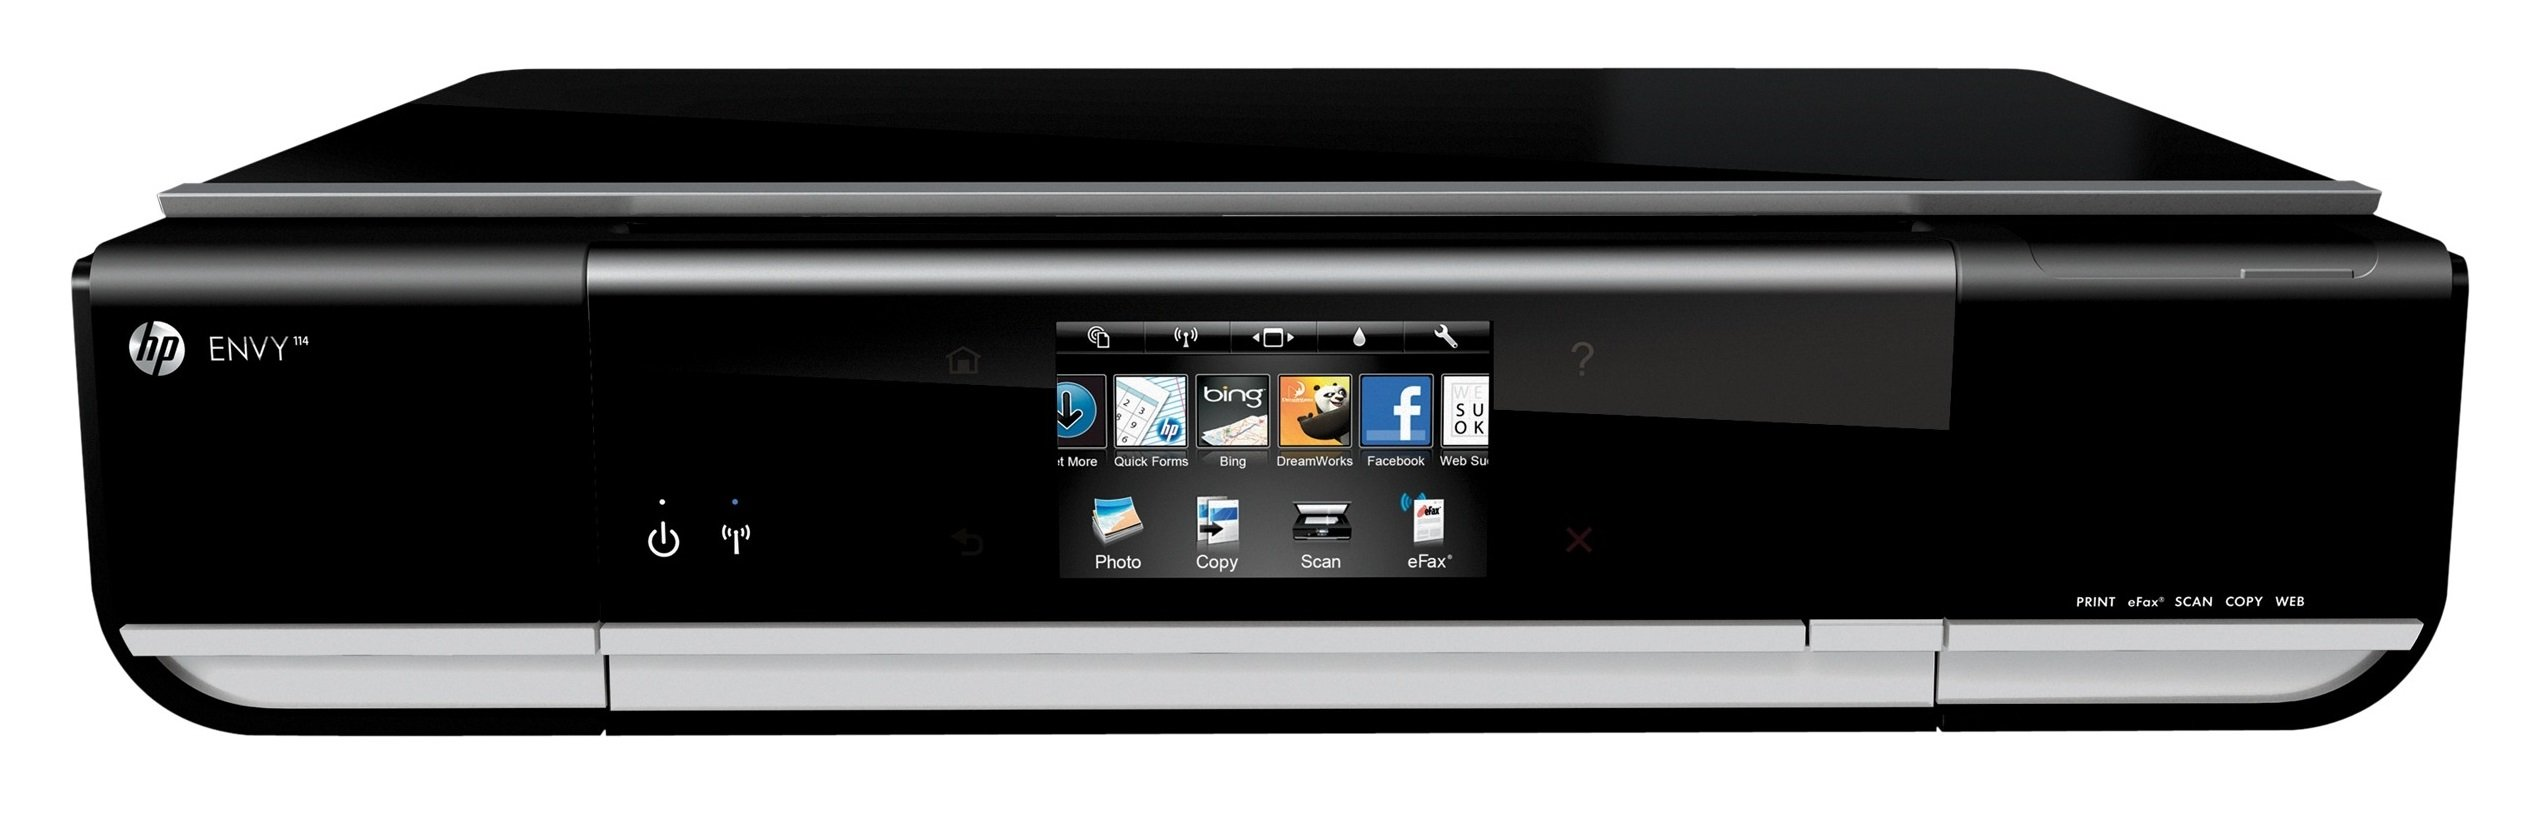 HP Envy 114 e-All-in-One Ink Cartridges